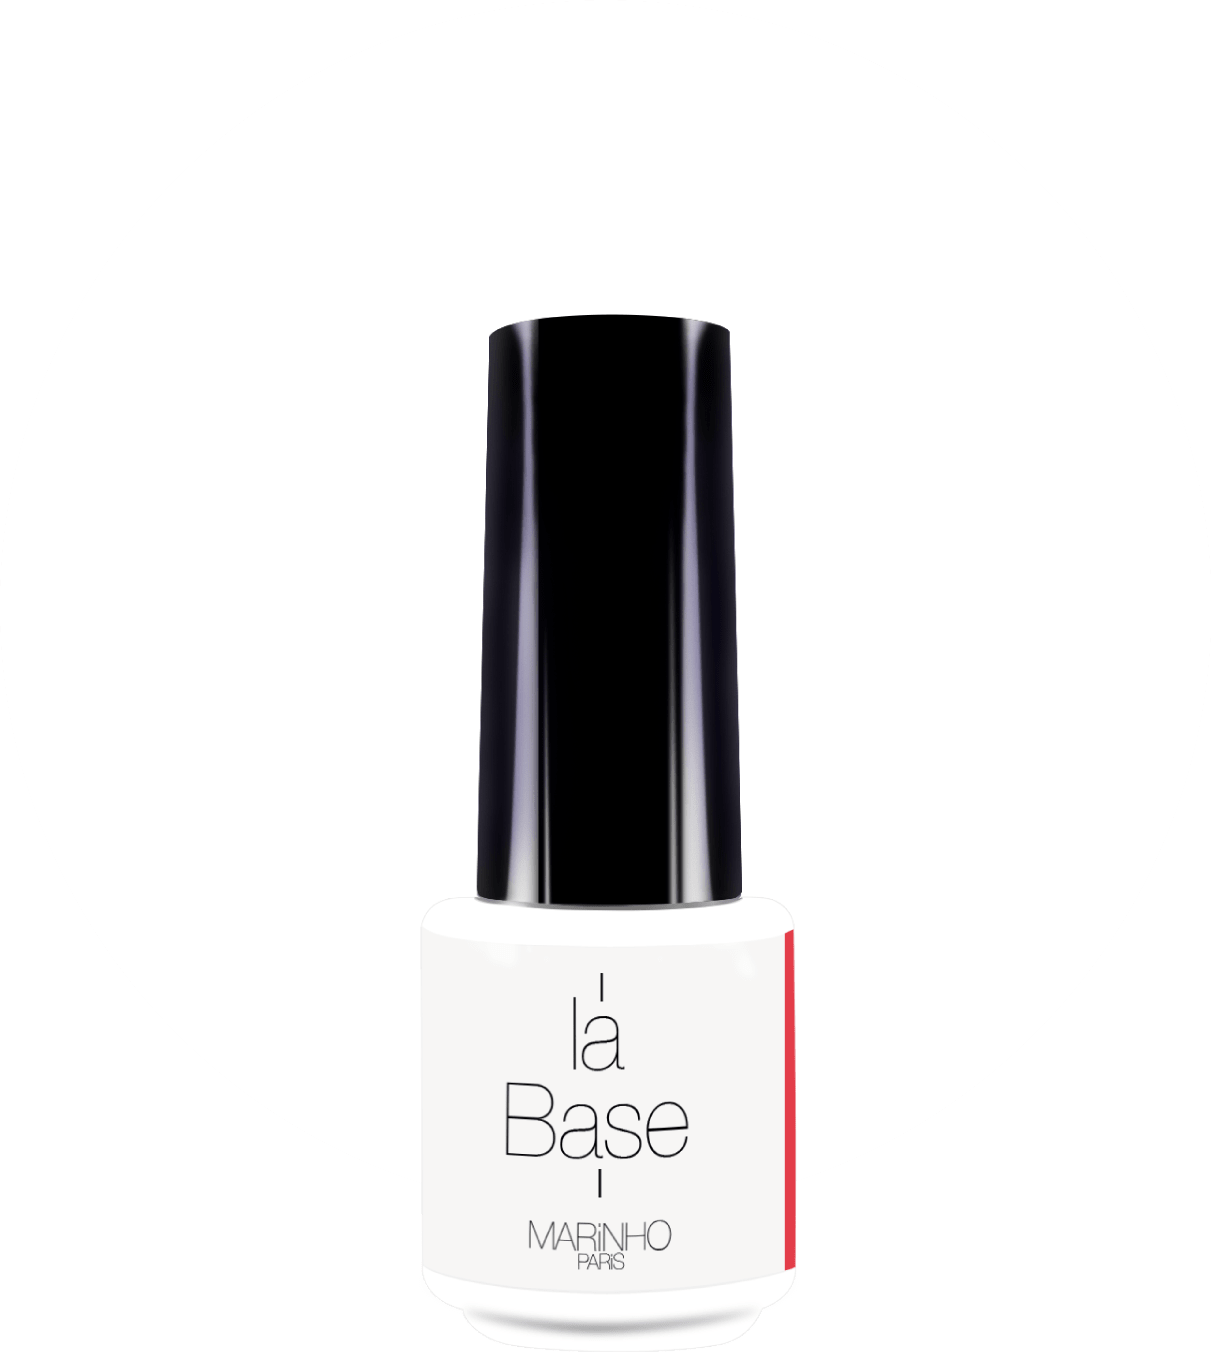 vernis semi-permanent marinho paris base coat